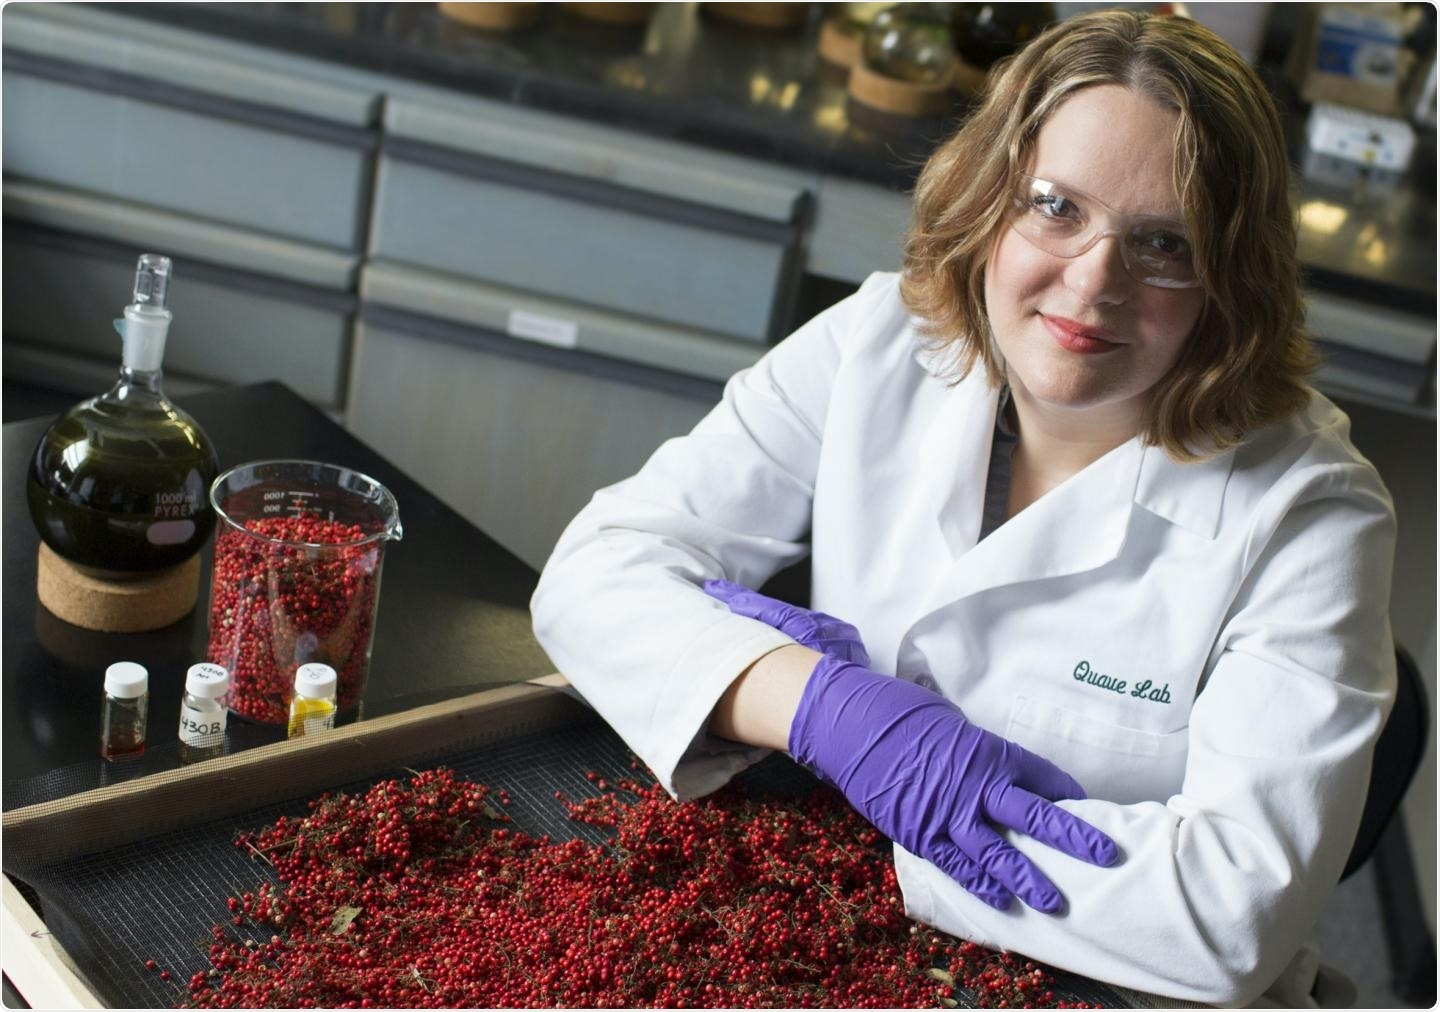 Compounds in Brazilian shrub can reduce the virulence of antibiotic-resistant bacteria